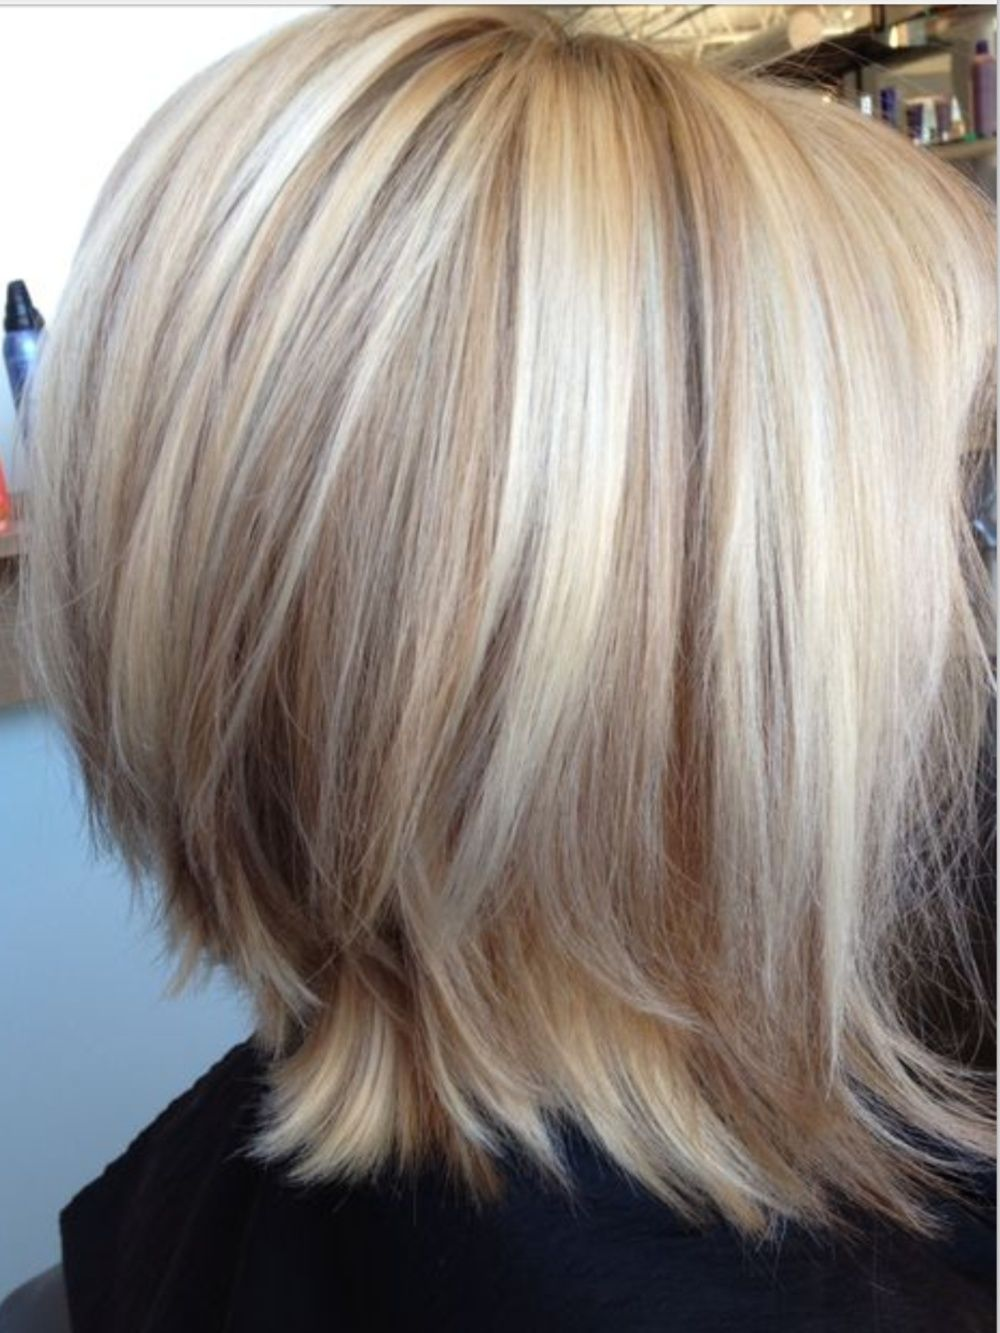 Edgy Bob Ends Flipped Highlights Very Light Blonde Cool Shades